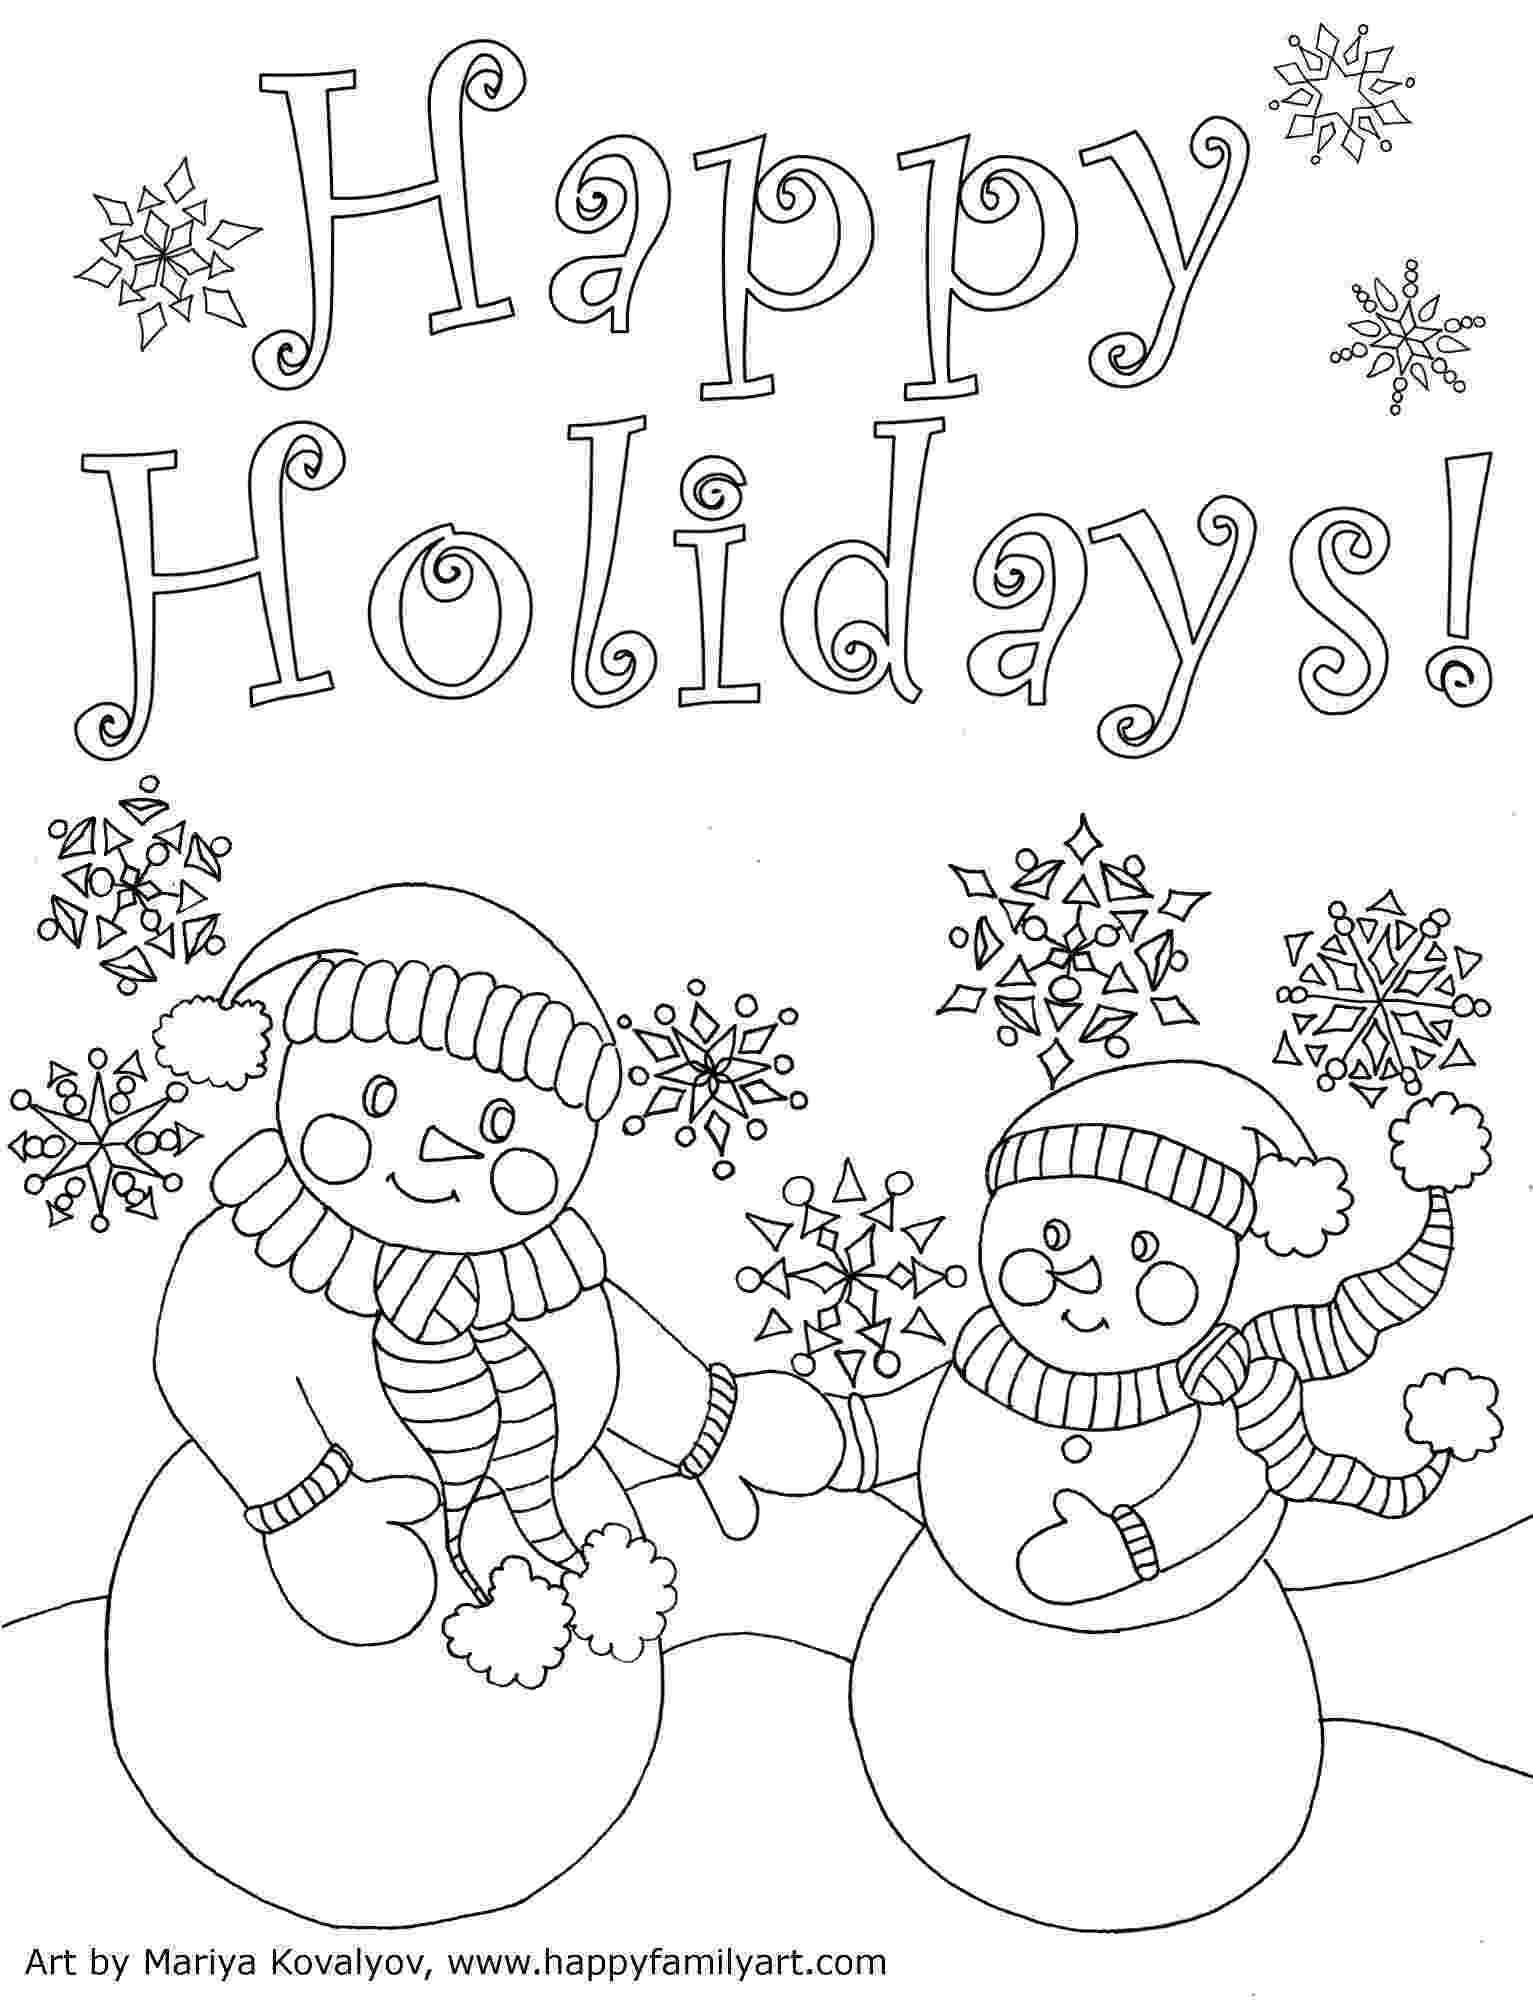 christmas card coloring happy family art original and fun coloring pages card christmas coloring